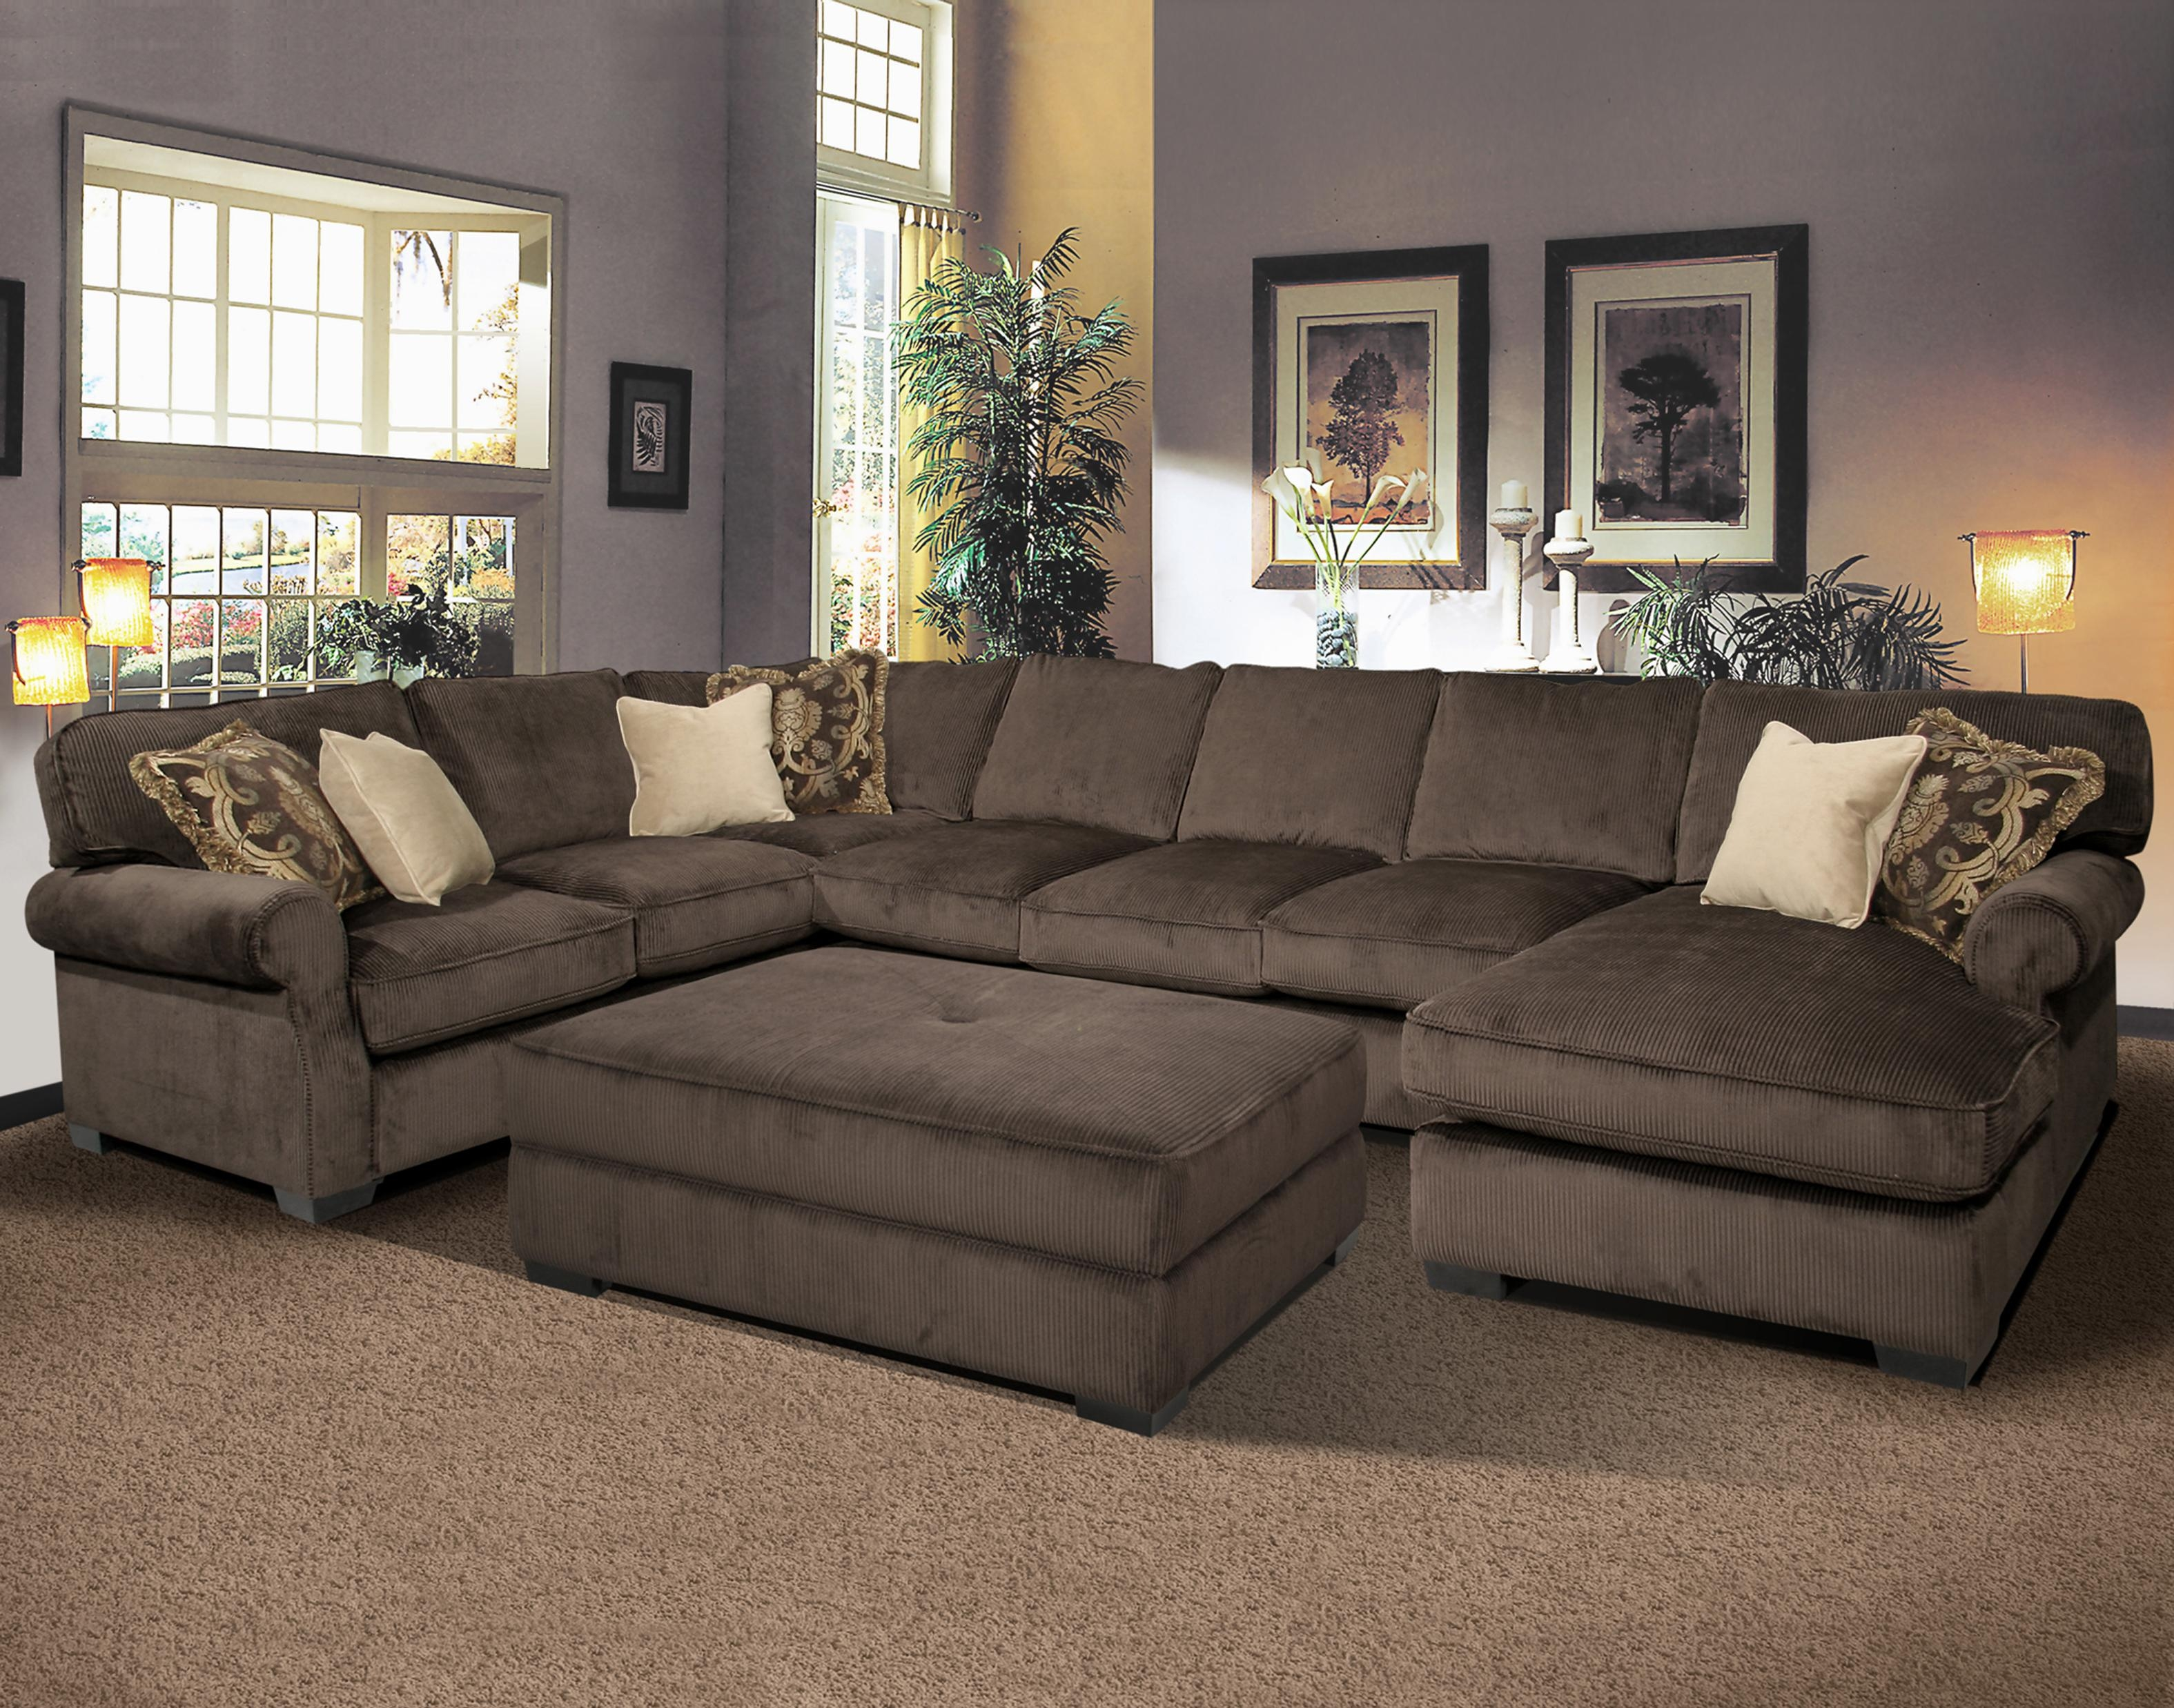 Best 25 Large Sectional Sofa Ideas On Pinterest In Extra Wide Sectional Sofas (View 2 of 15)